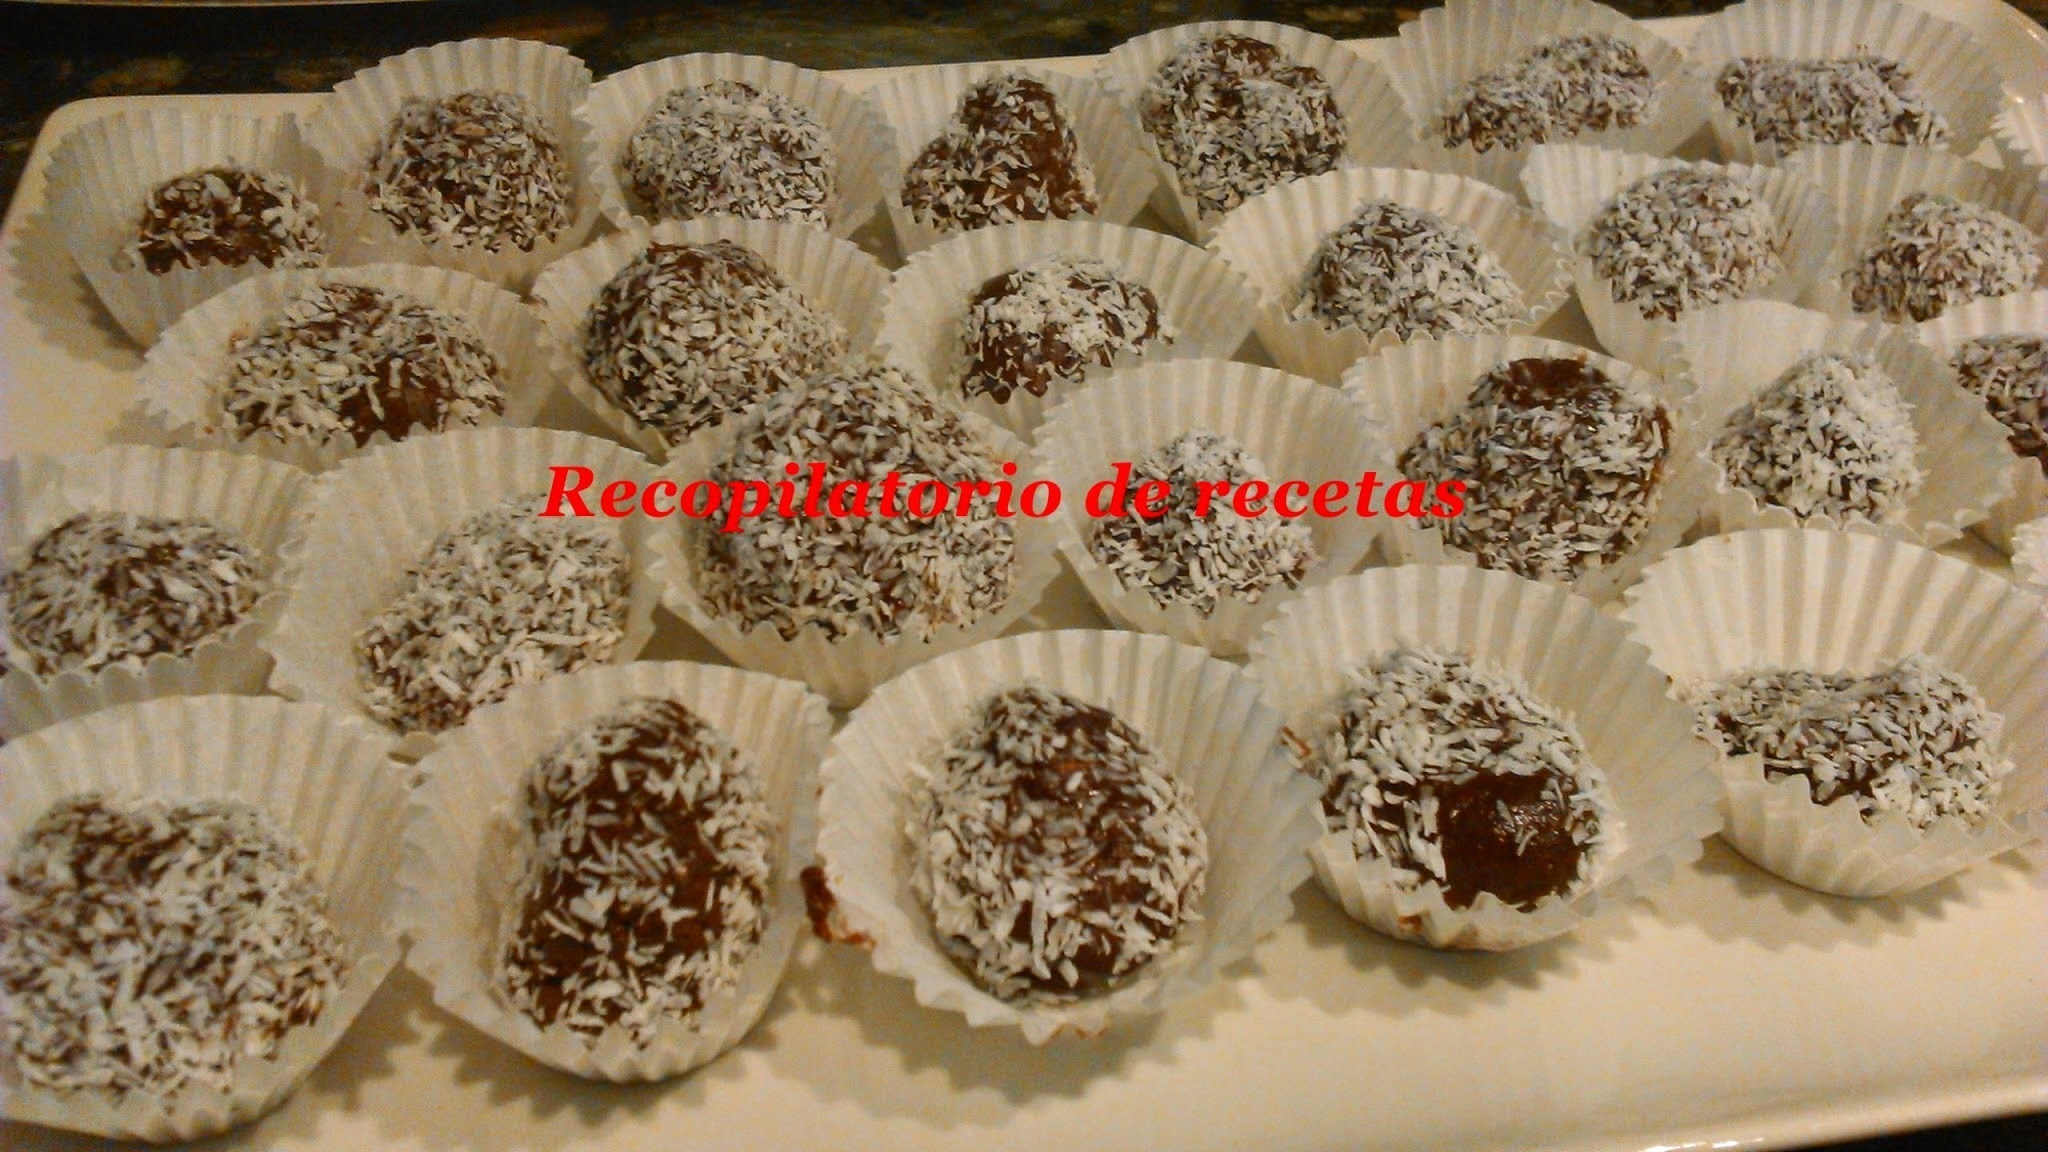 Rocas de chocolate con nueces decoradas con coco en thermomix